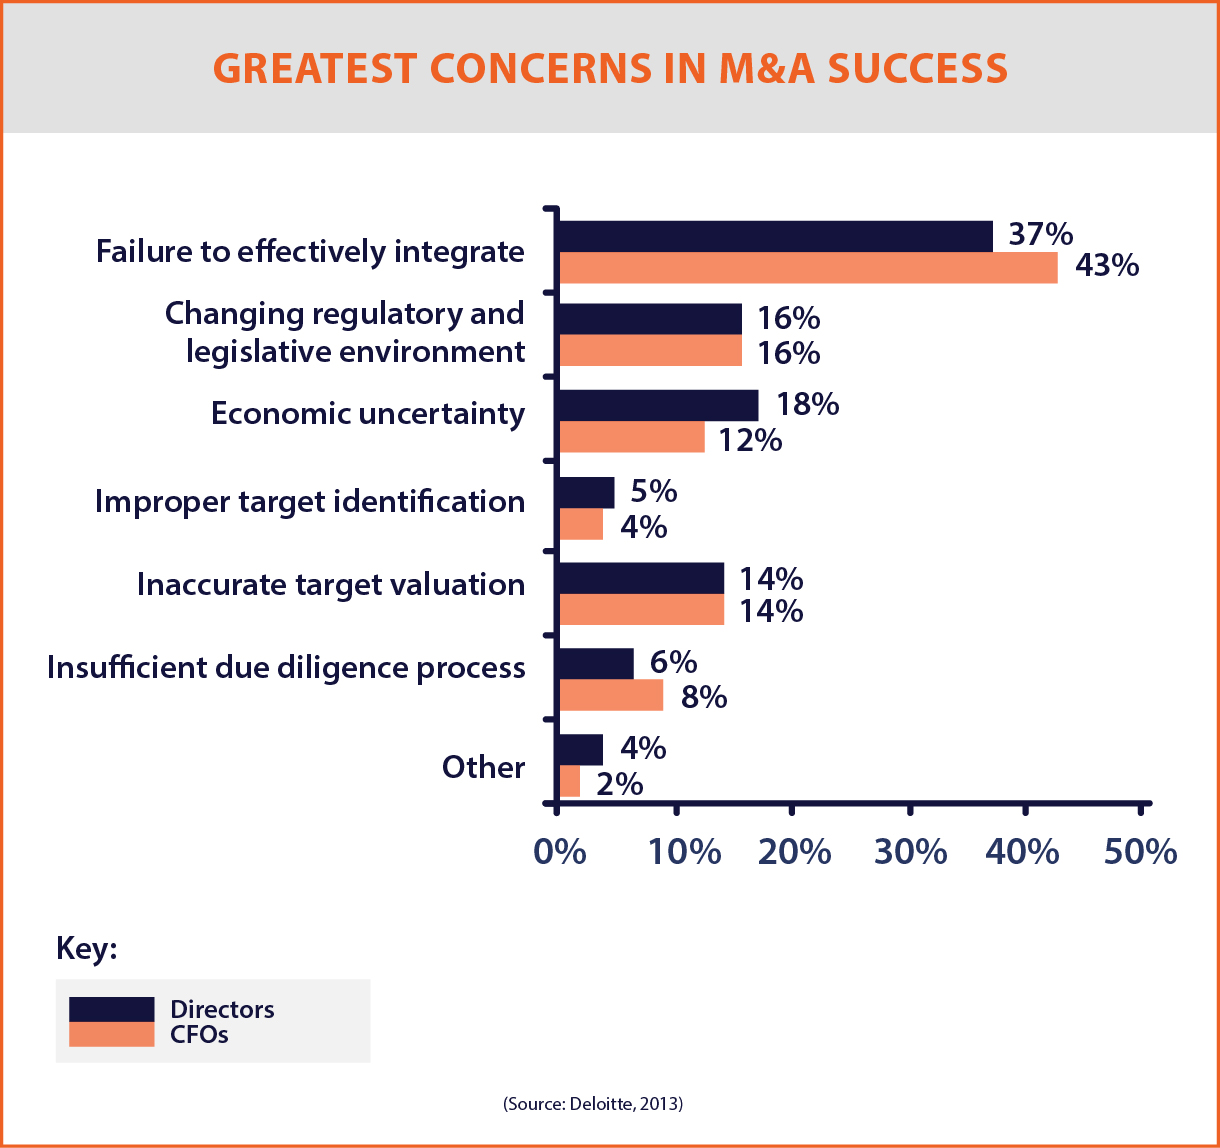 GREATEST CONCERNS IN M&A SUCCESS GRAPHS